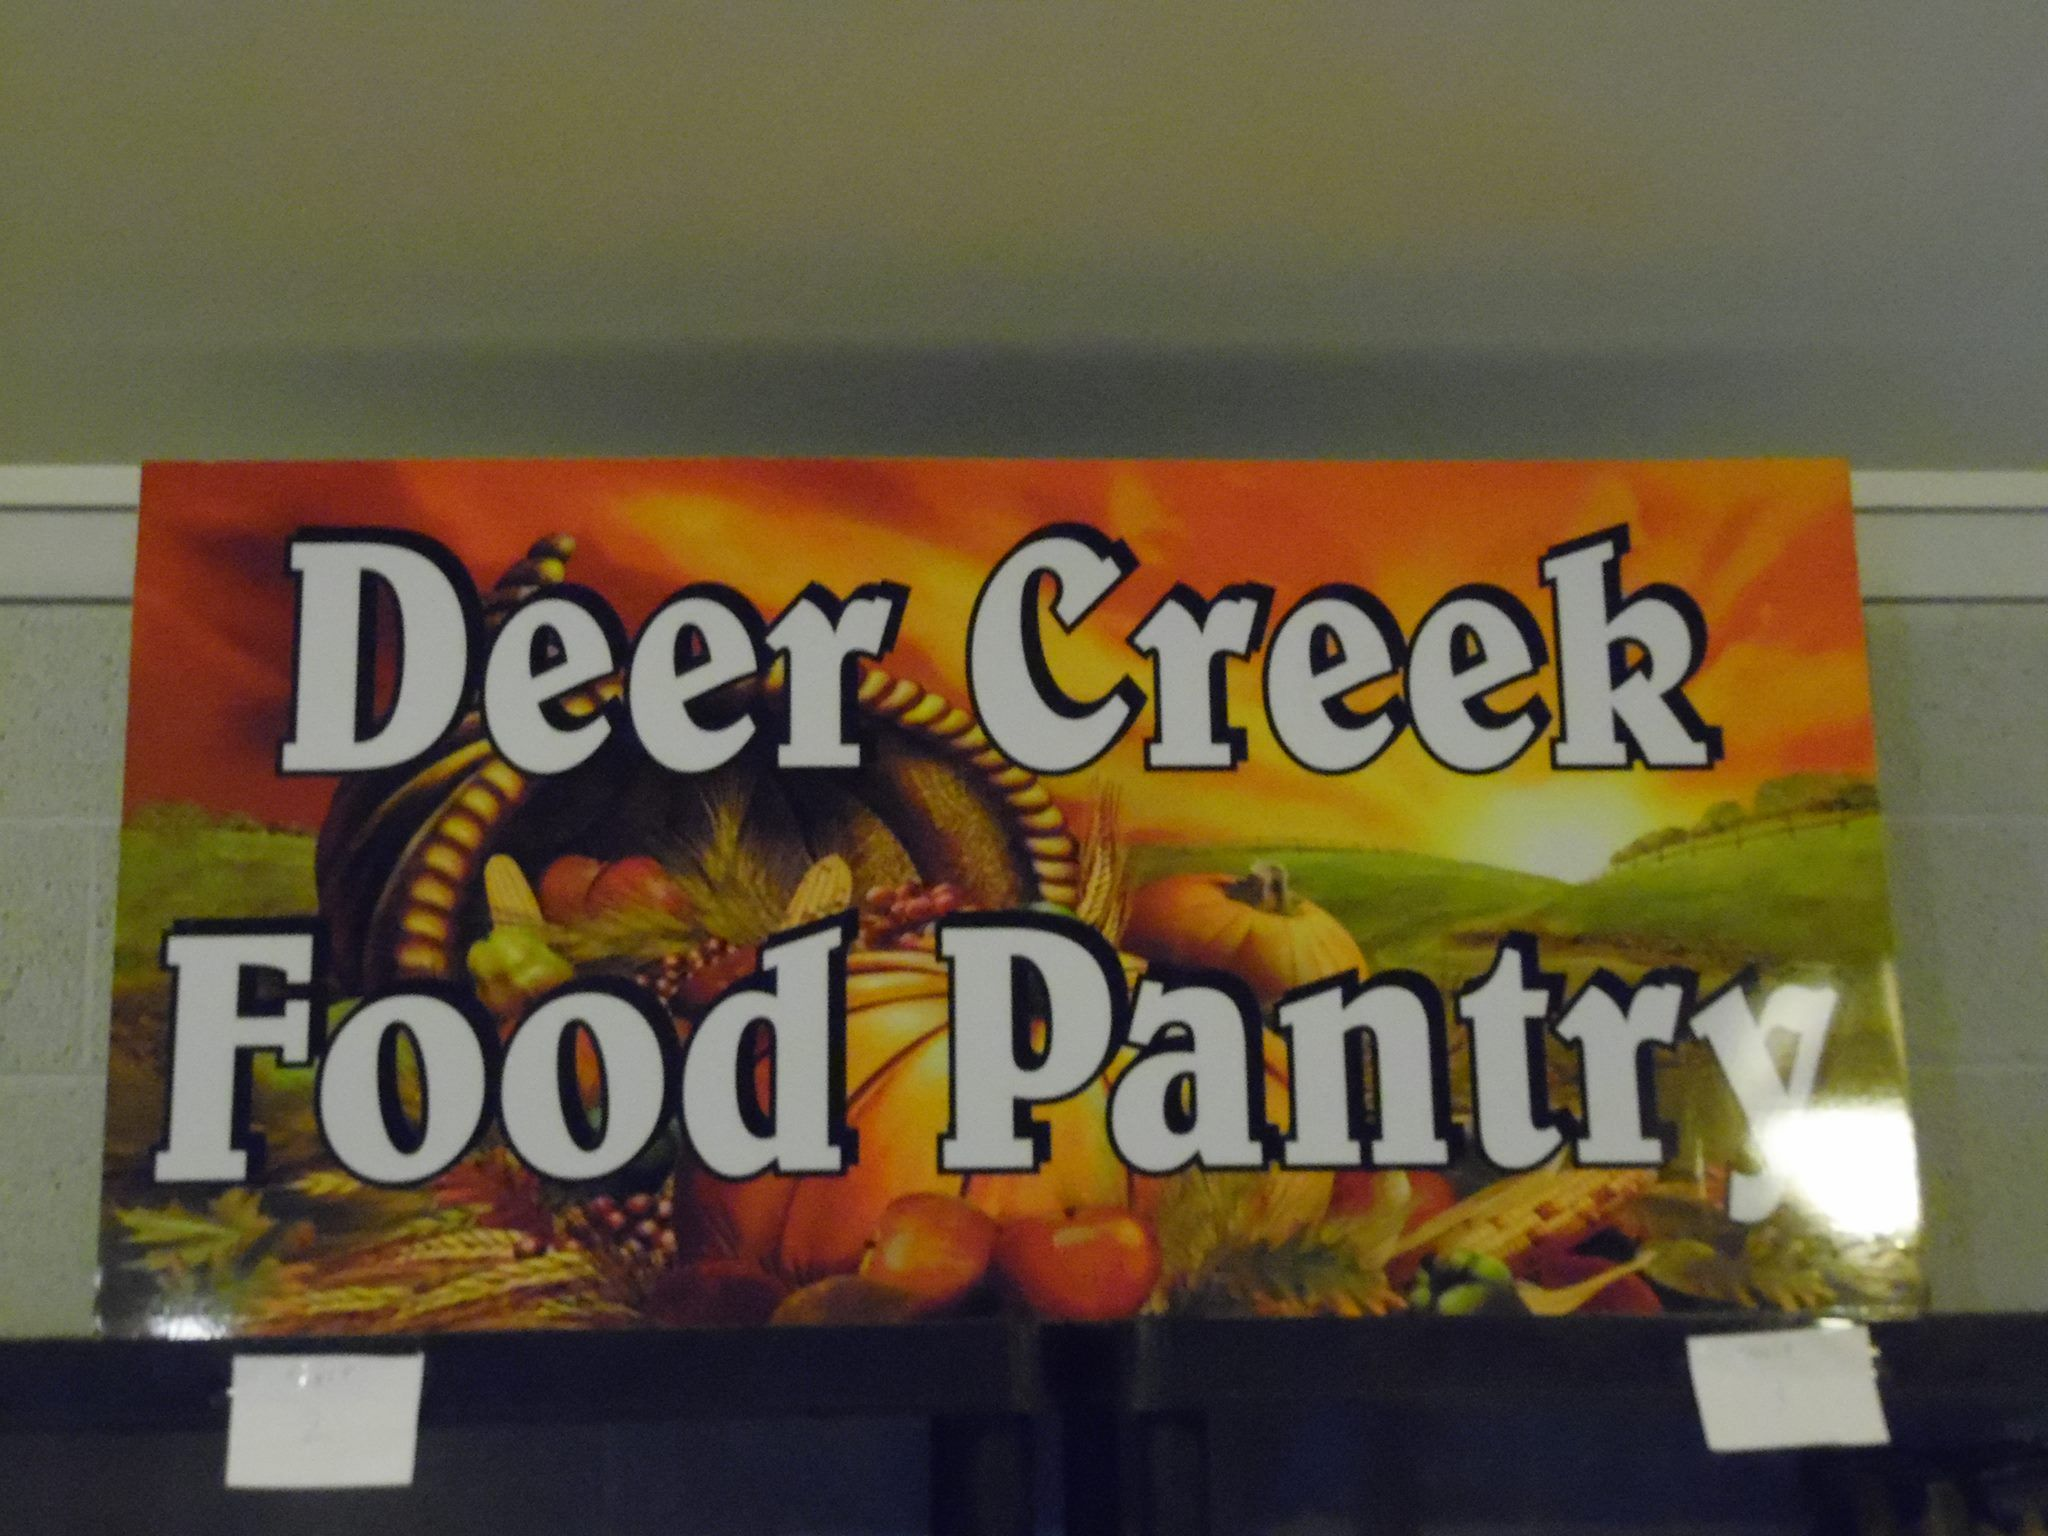 Deer Creek Food Pantry